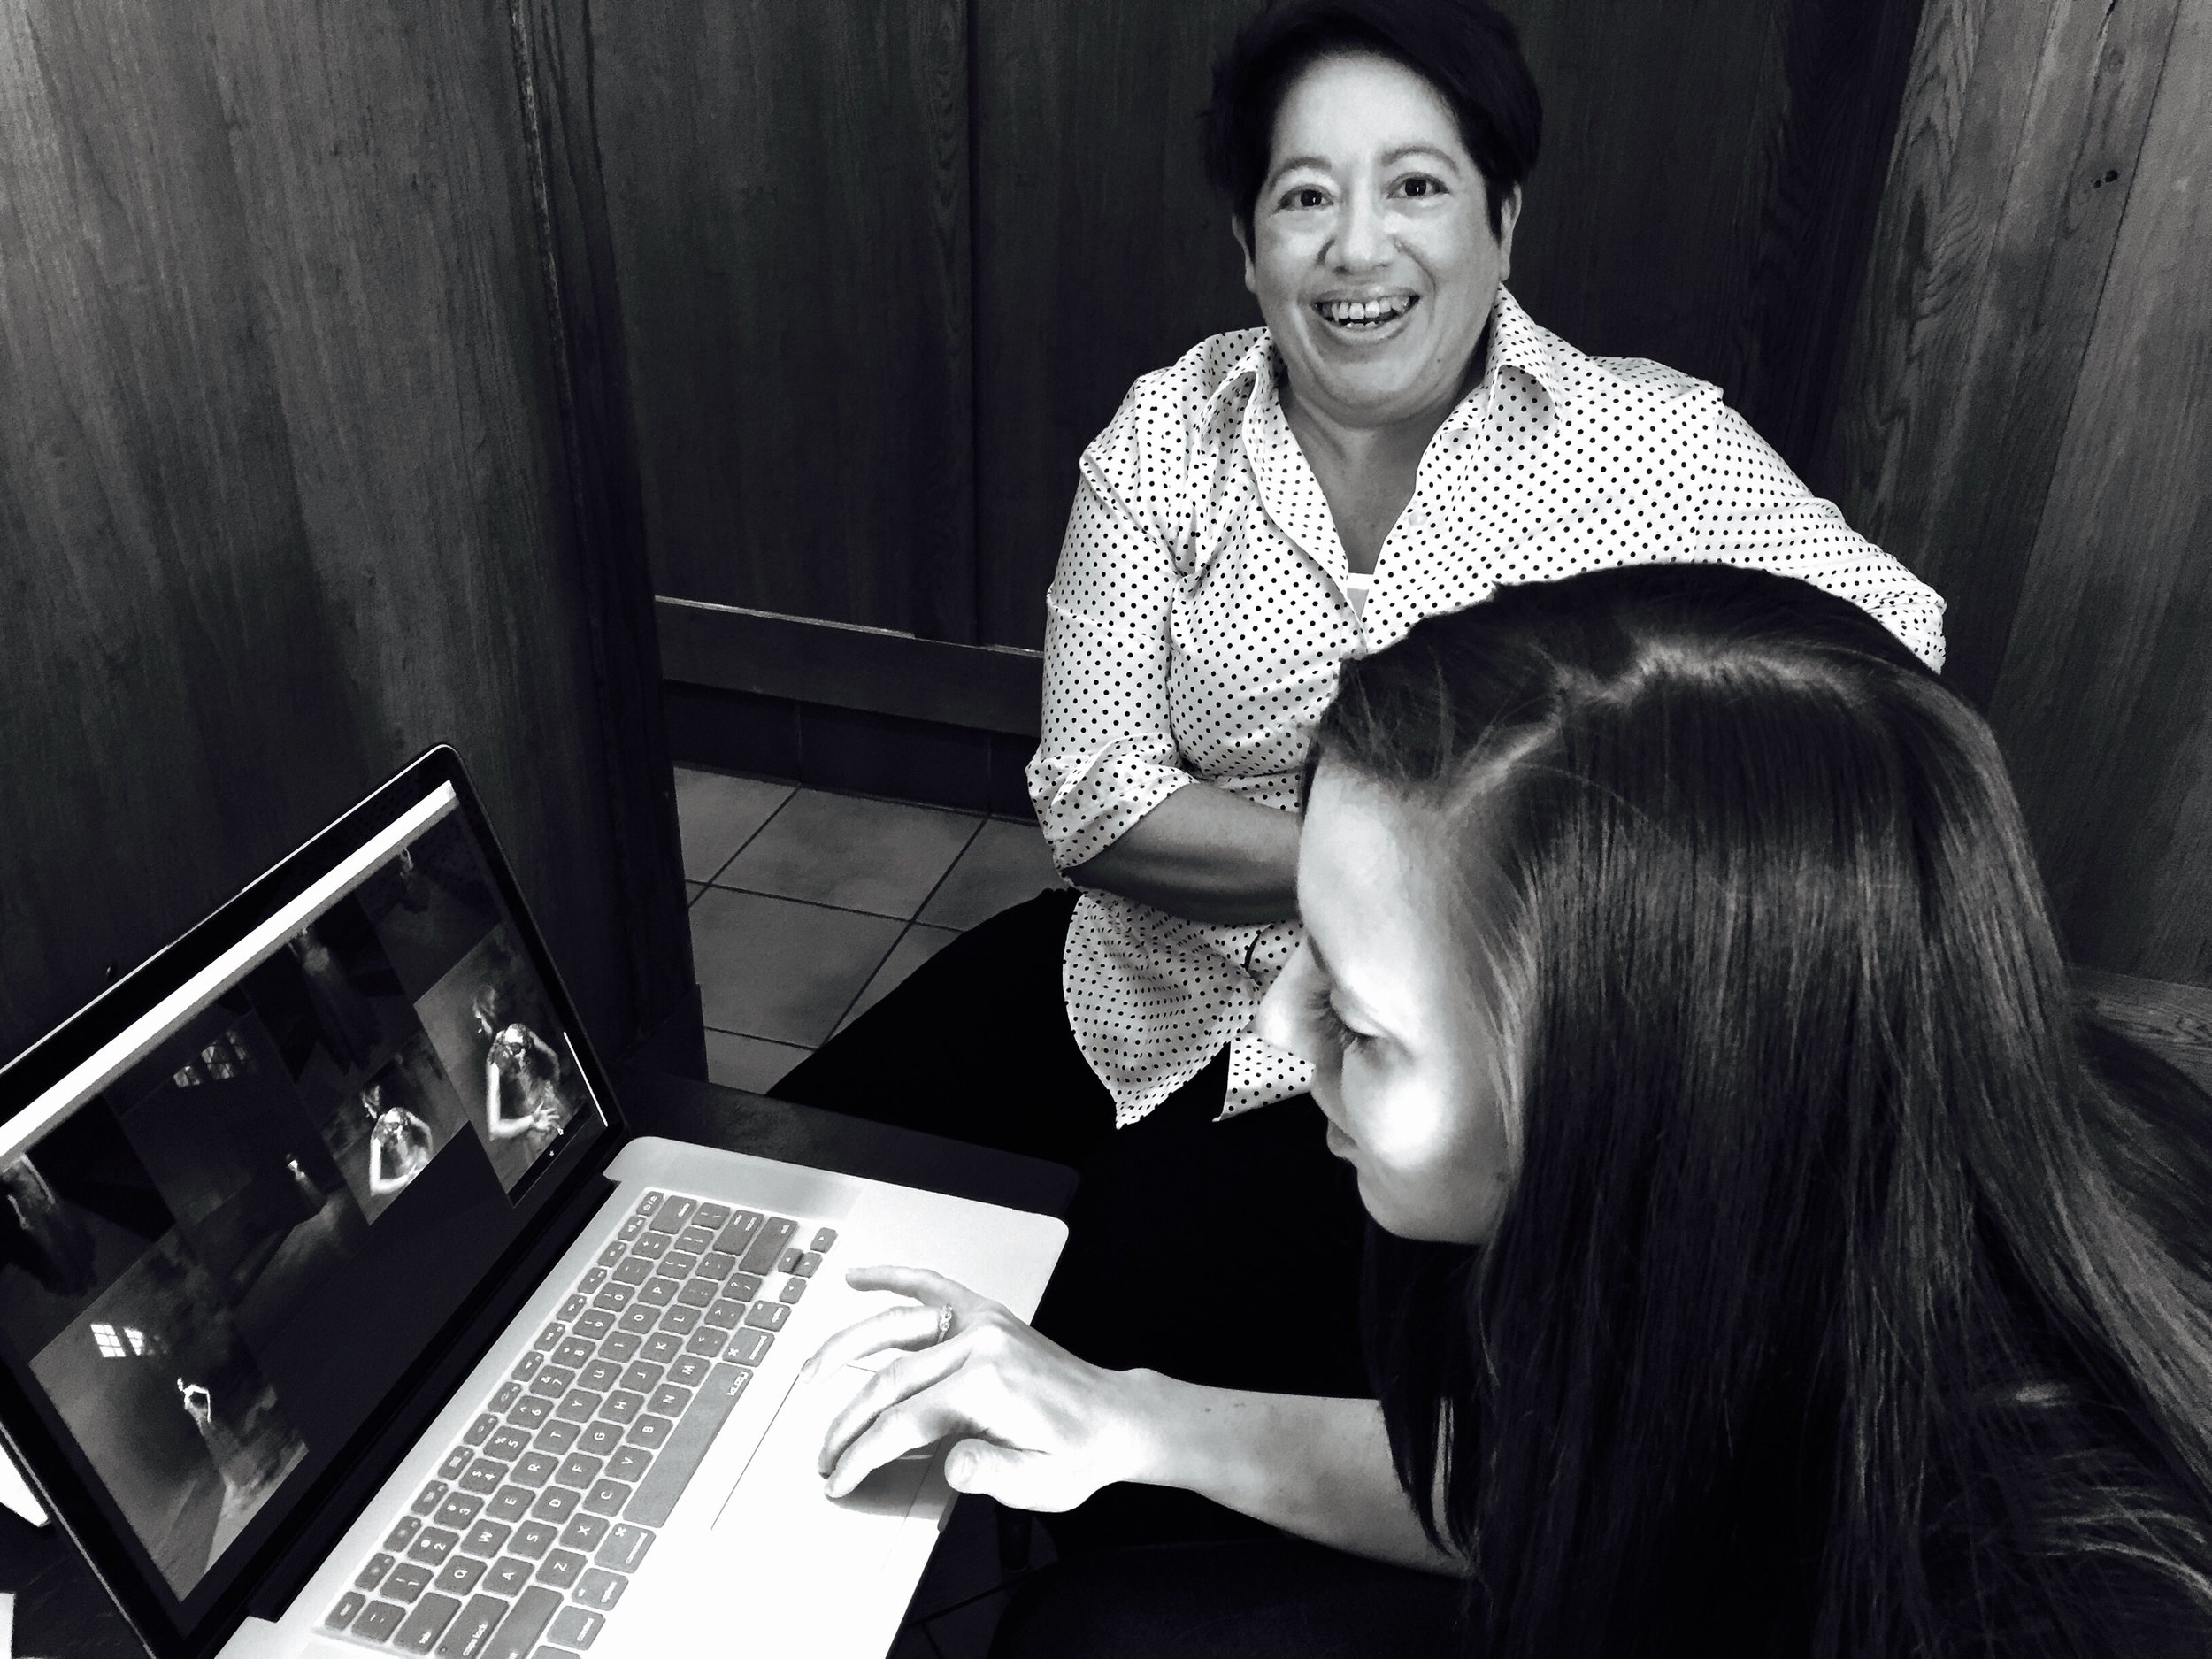 Here Kimberly Pimentel of Pimentel Portfolio shows Amy Stegman her images.